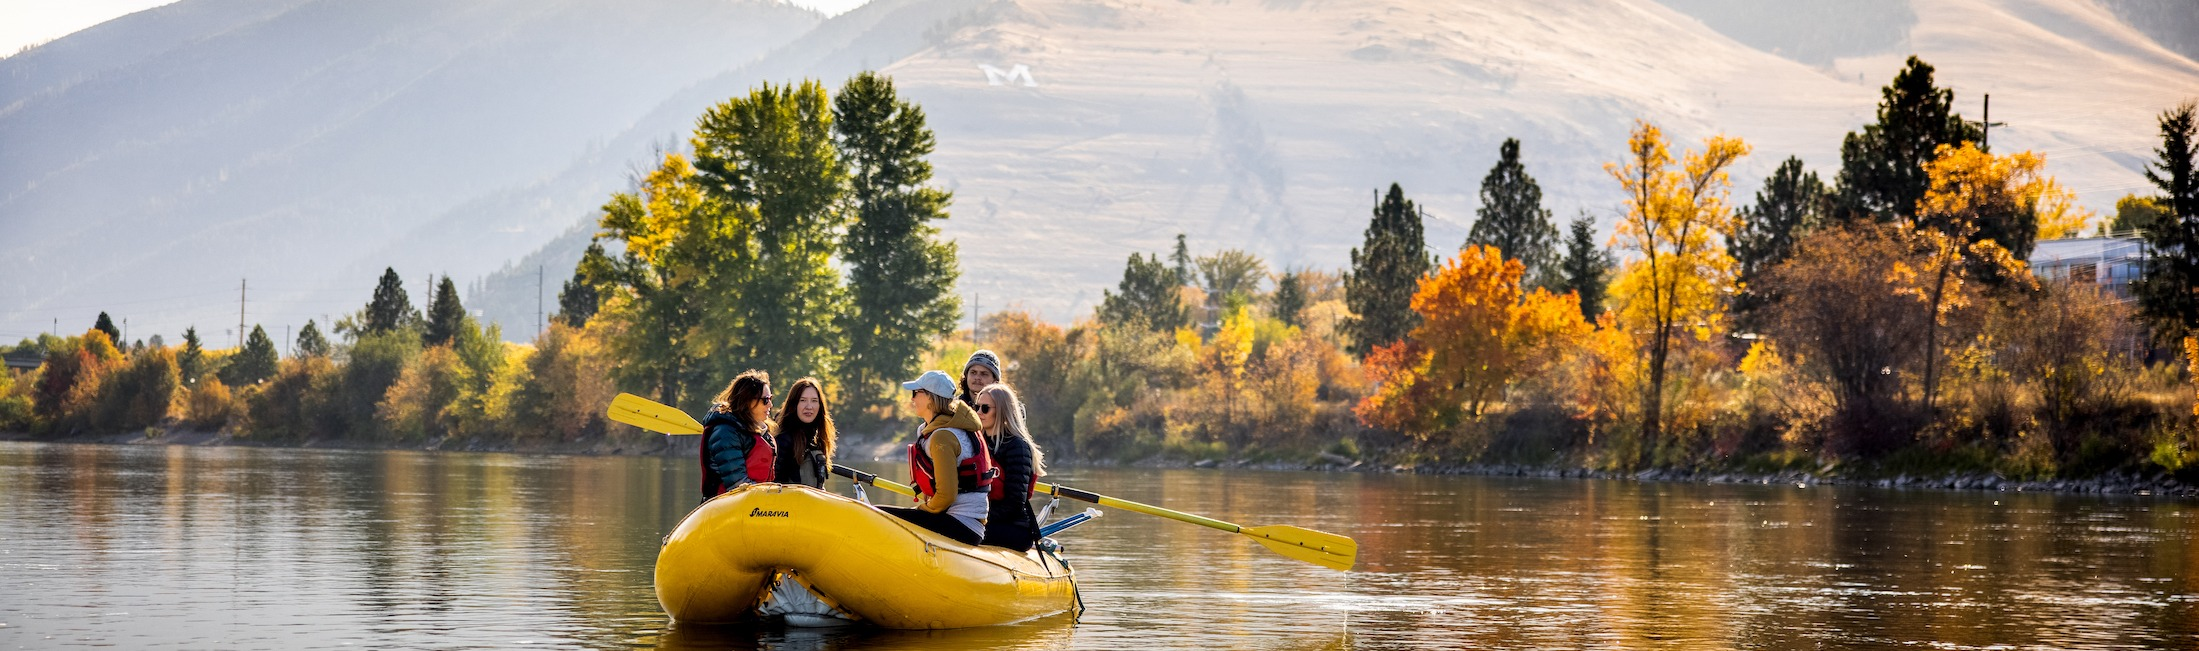 Mastering Missoula's Rivers with the Montana River Guides